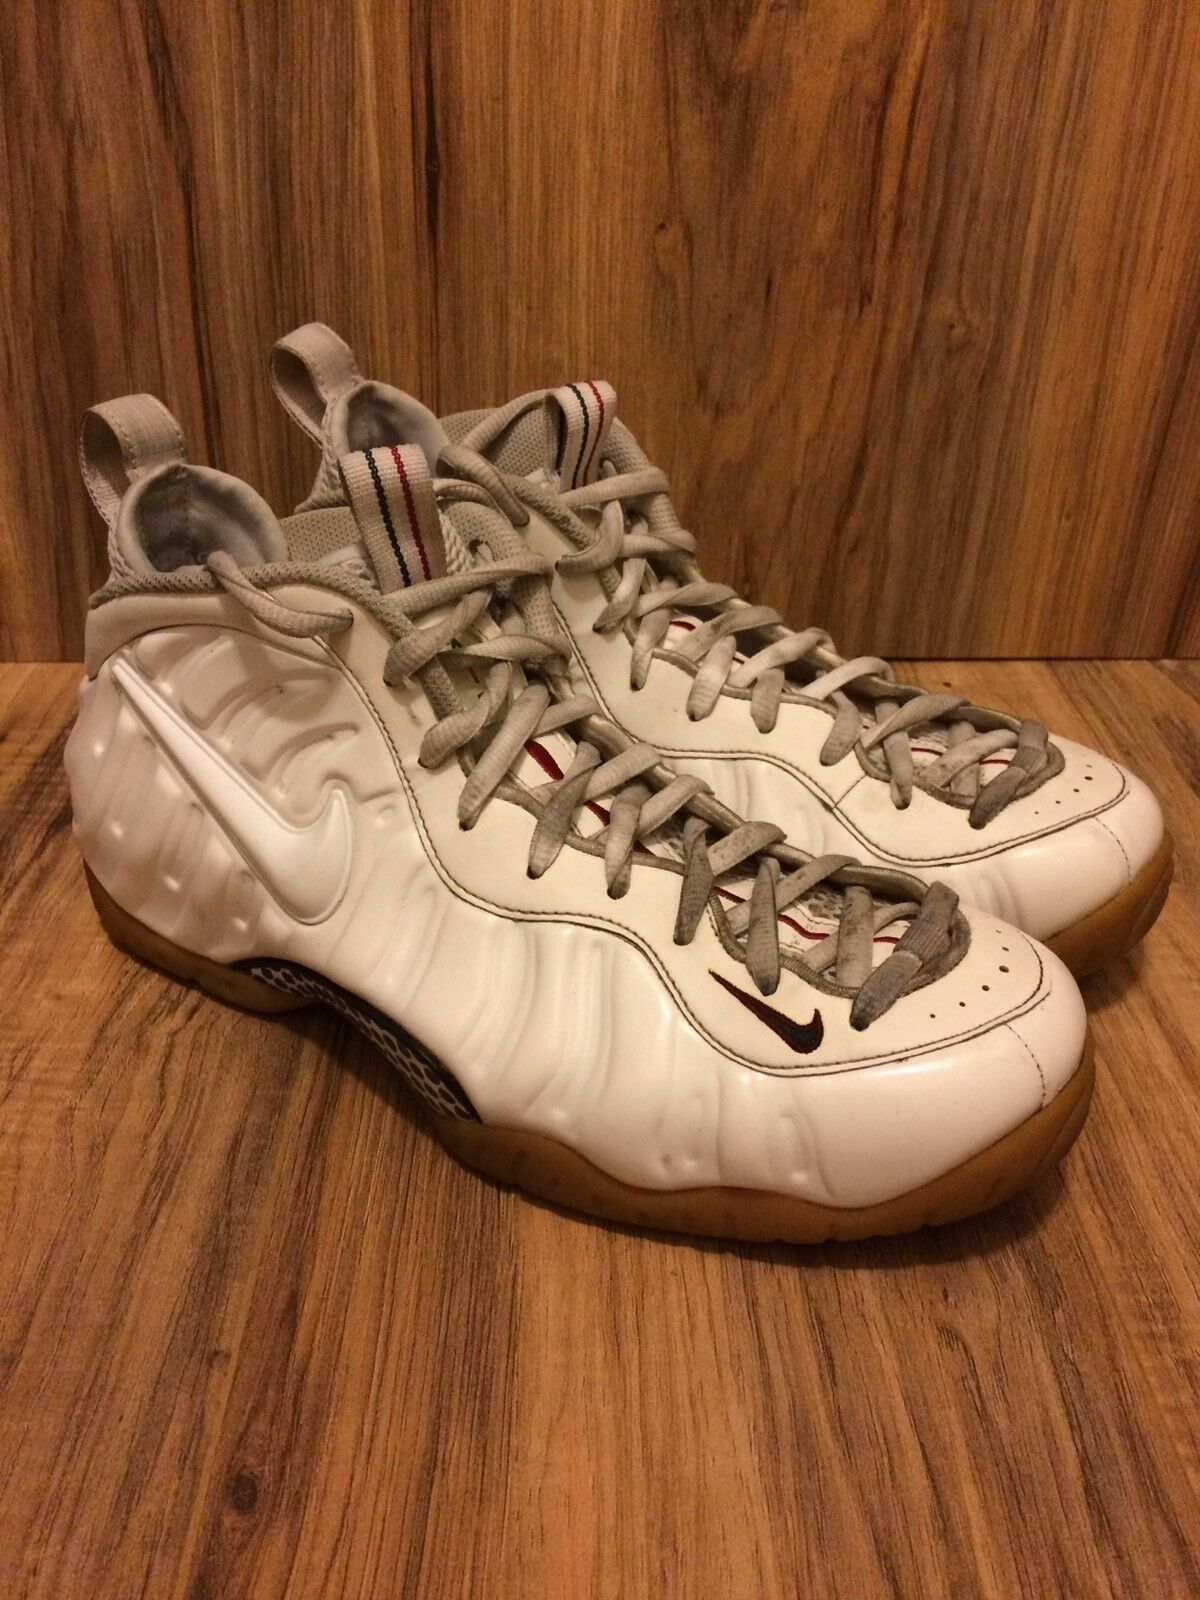 RARE Nike Air Foamposite Pro White Red Green Sz 10.5 624041-102 Cucci